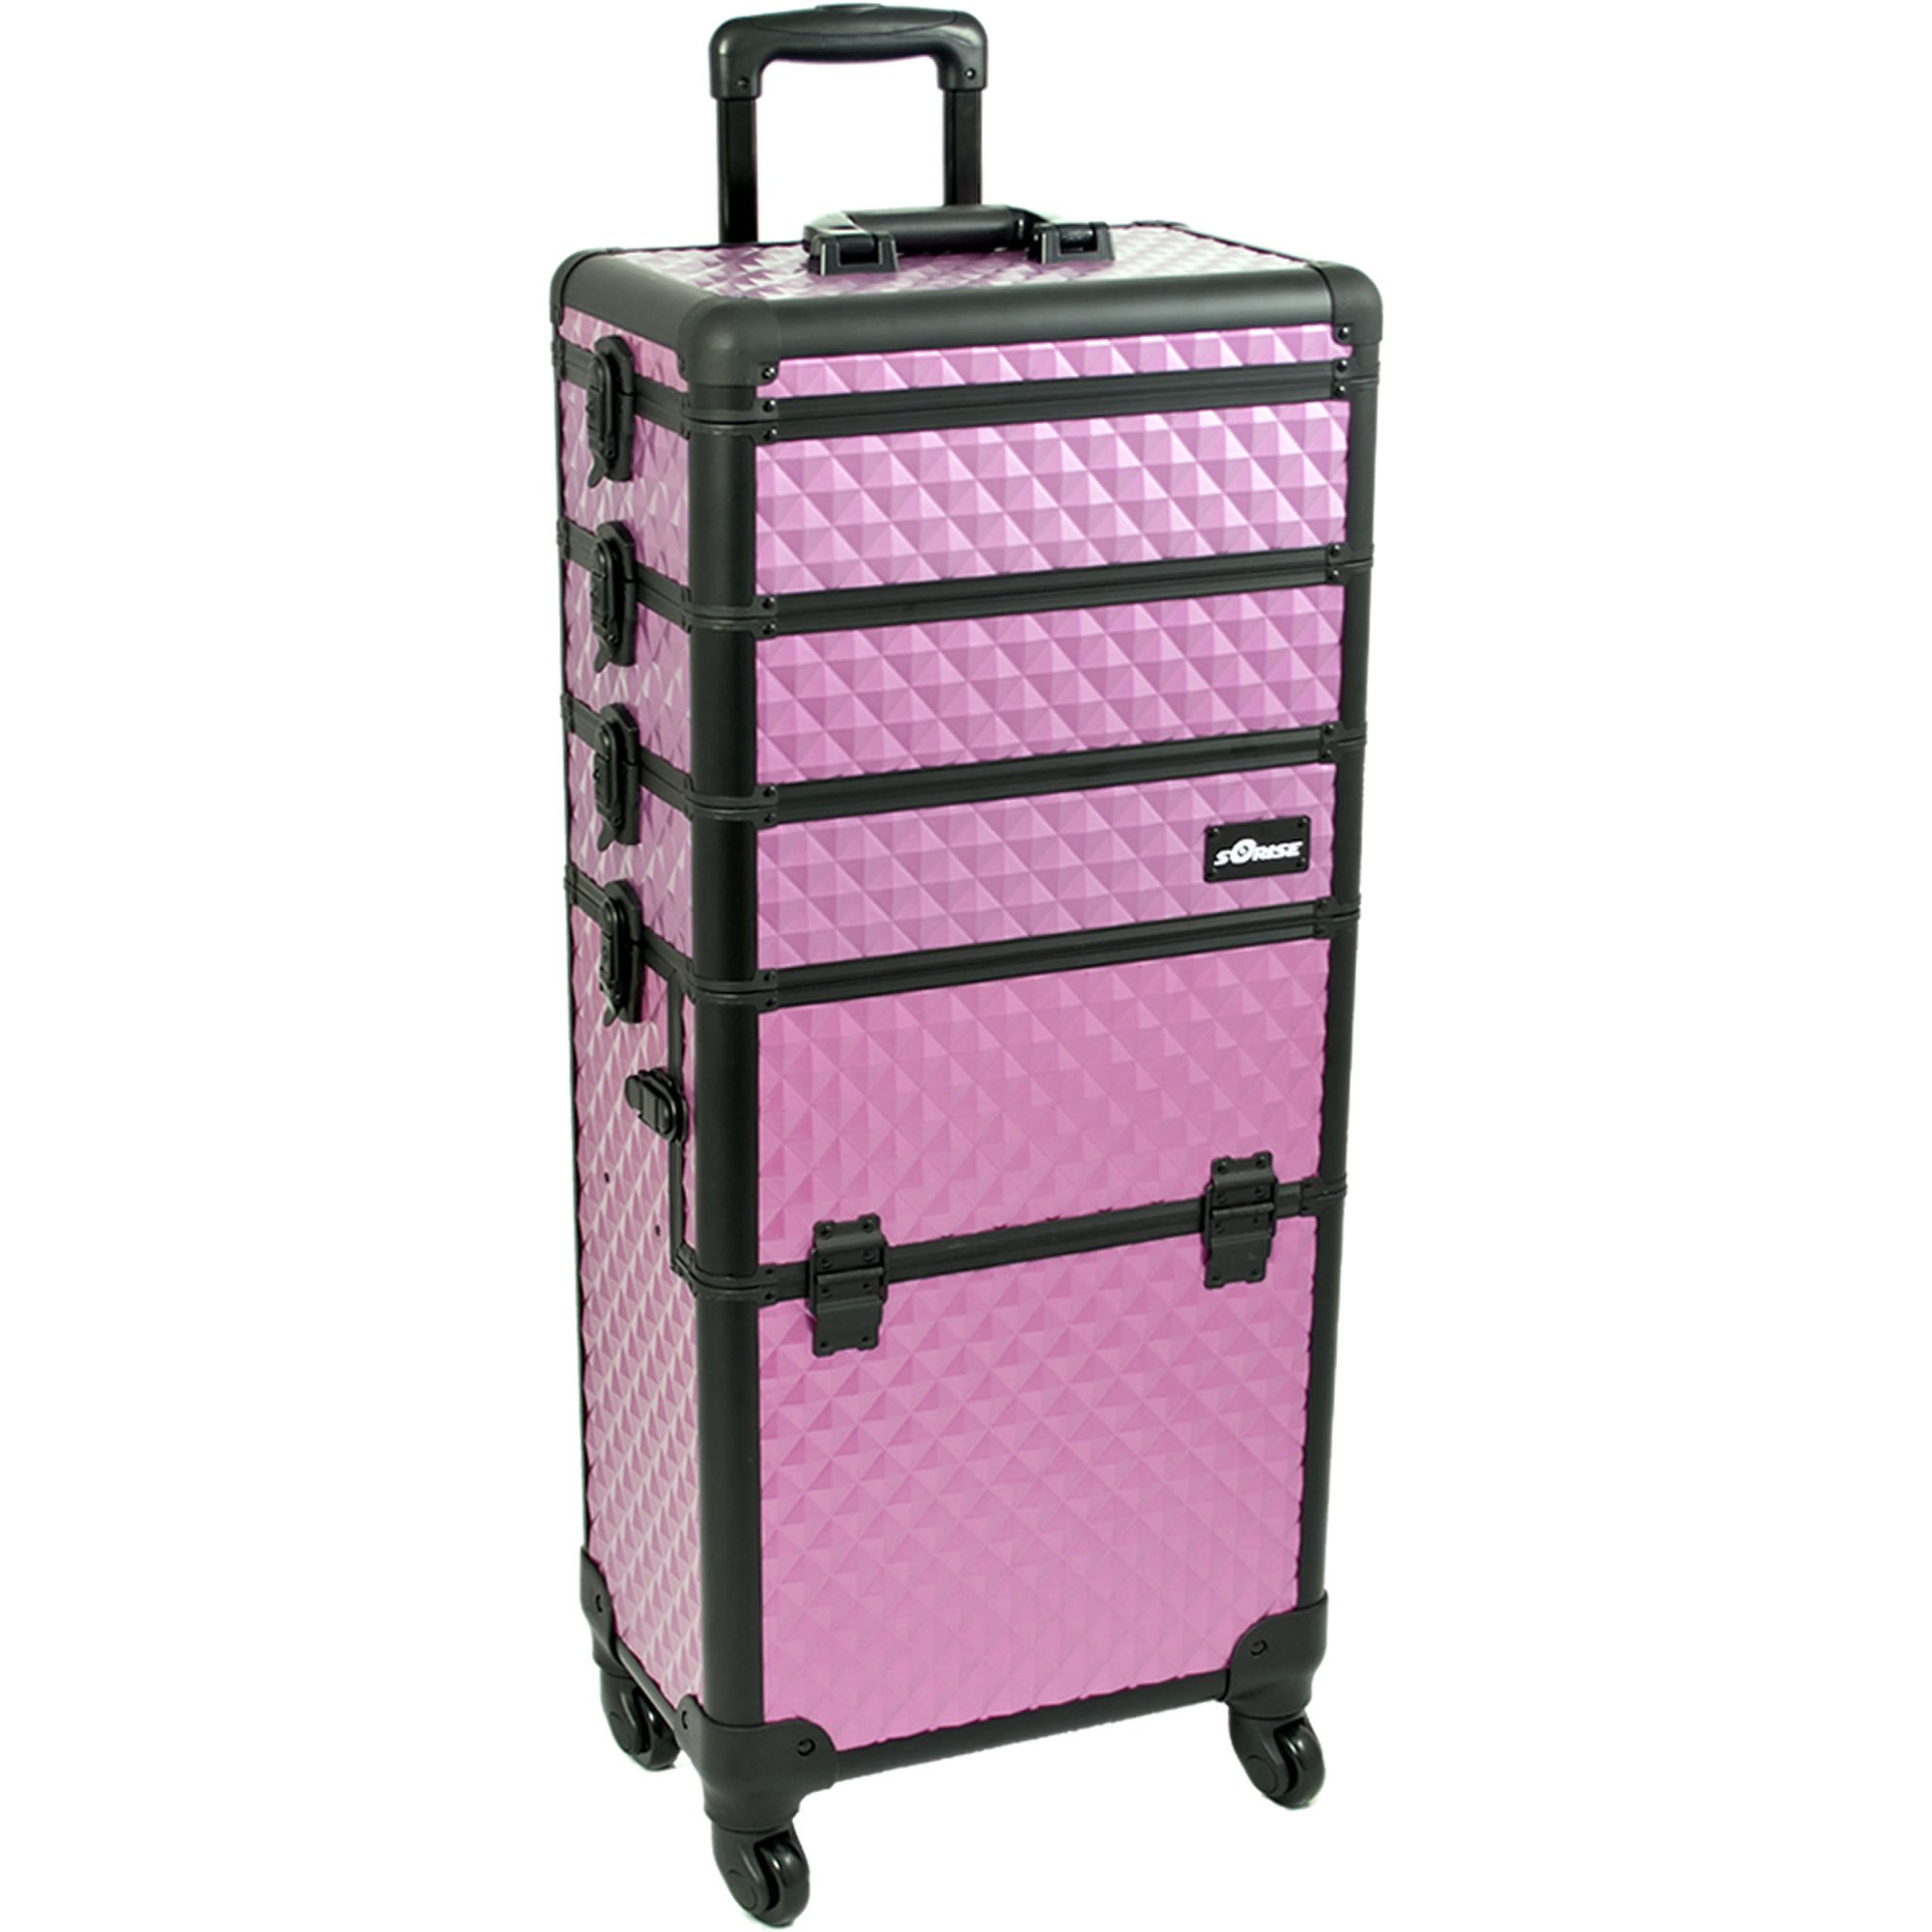 SUNRISE Makeup Case on Wheels 4 in 1 Professional Organizer I3361 Aluminum, 3 Stackable Trays with Adjustable Dividers, Locking with Mirror, Purple Diamond by SunRise